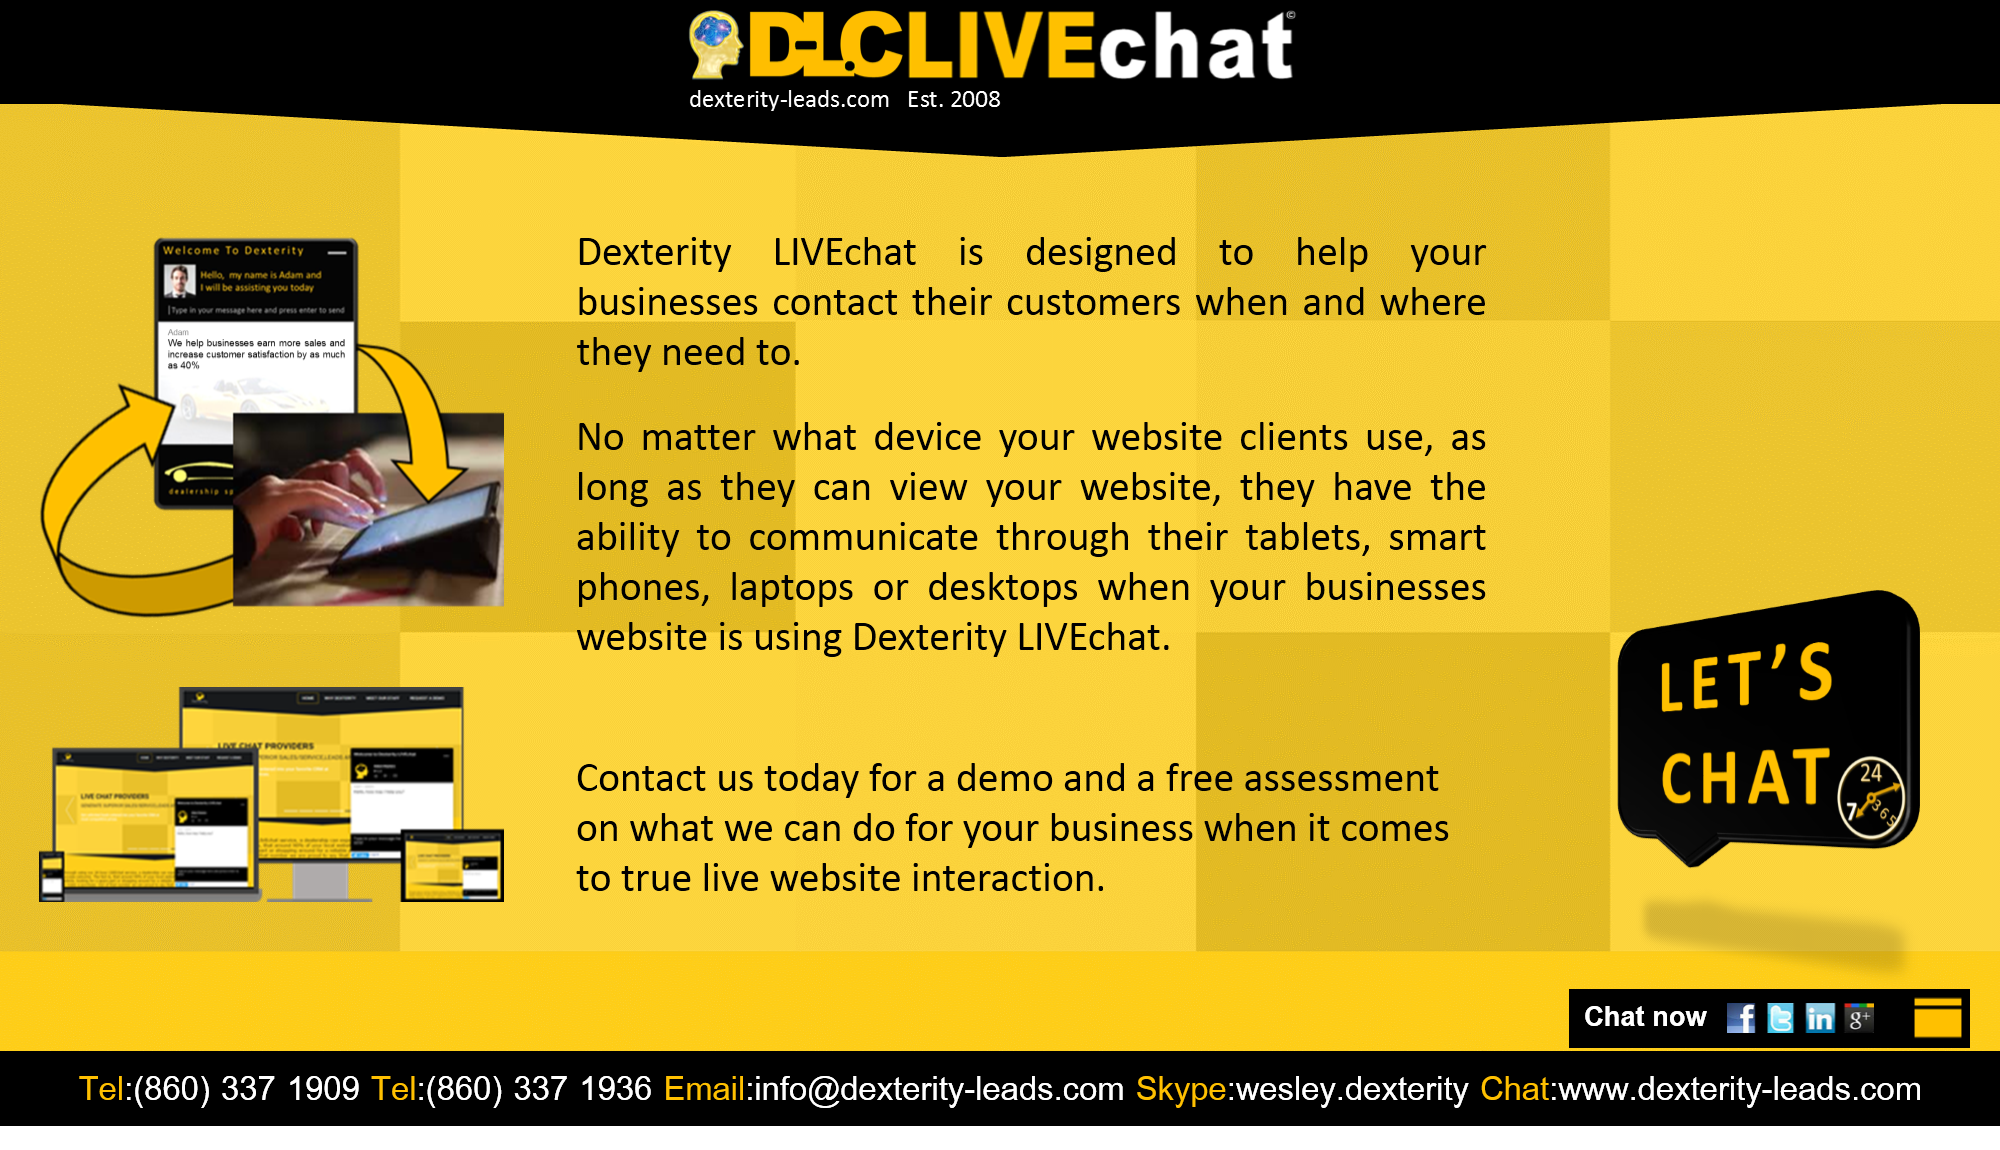 Dexterity livechat is designed to help your businesses contact their